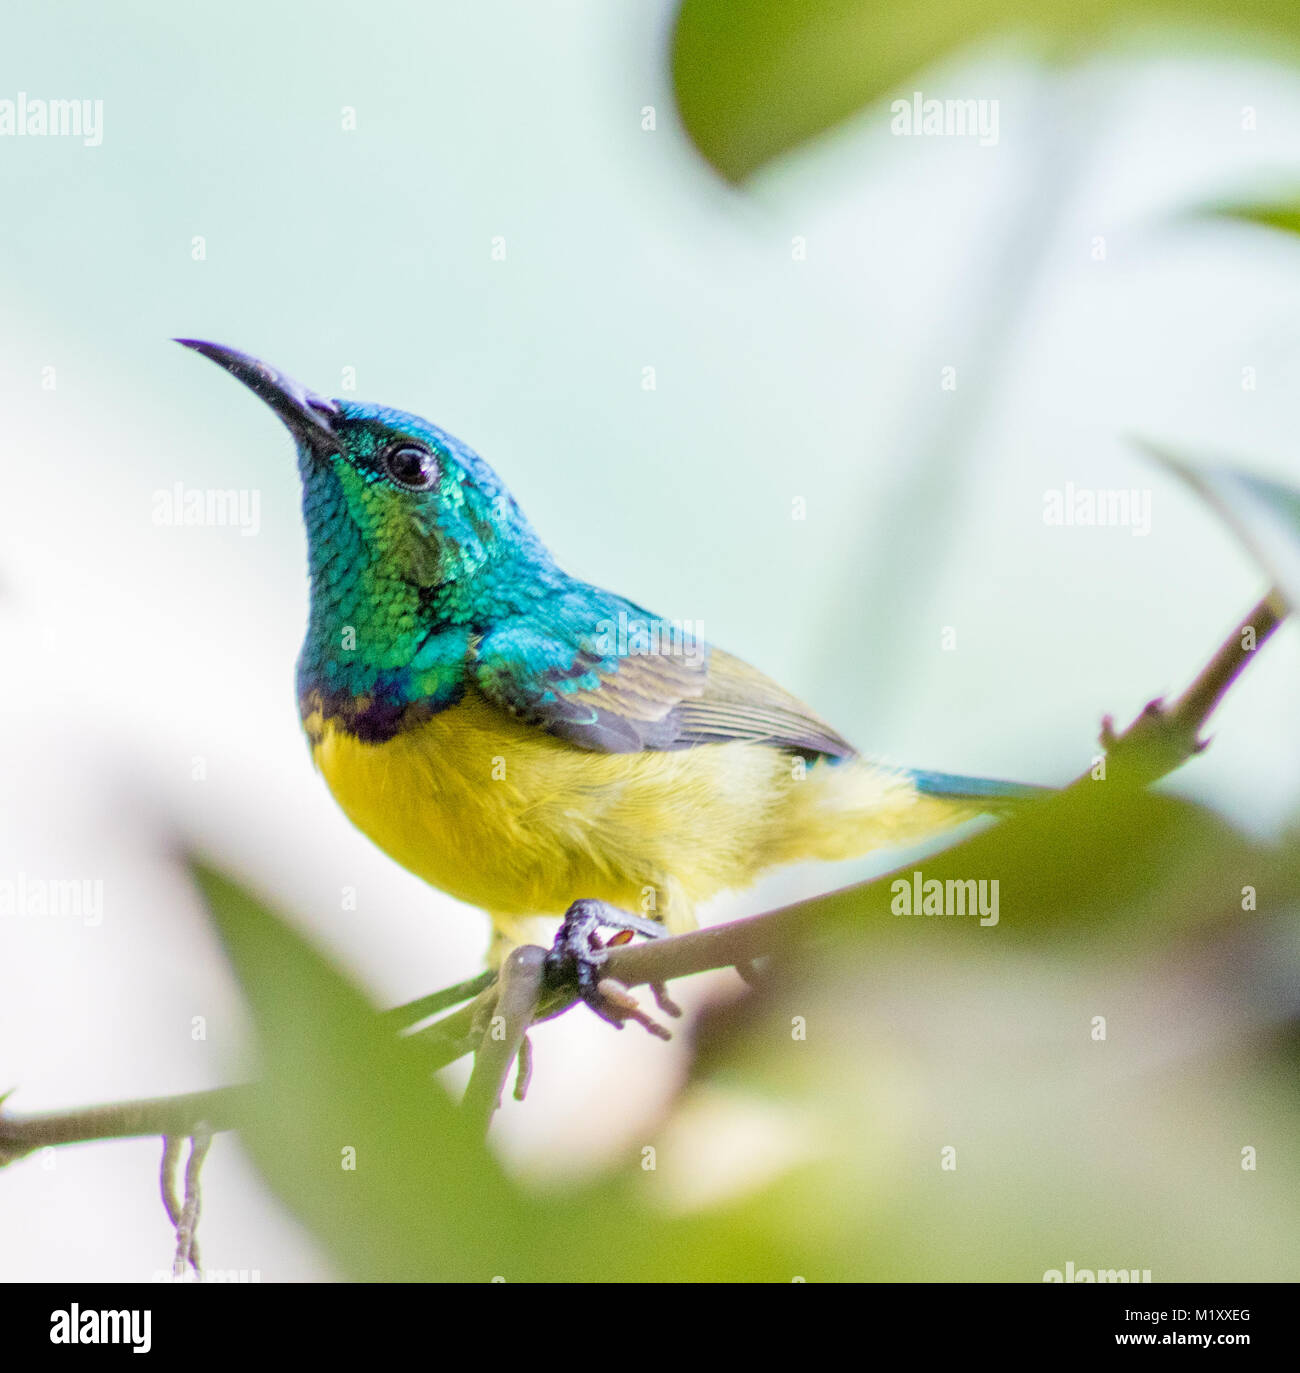 Stunning Eastern Collared Sunbird in Kenya emerging from the undergrowth. - Stock Image